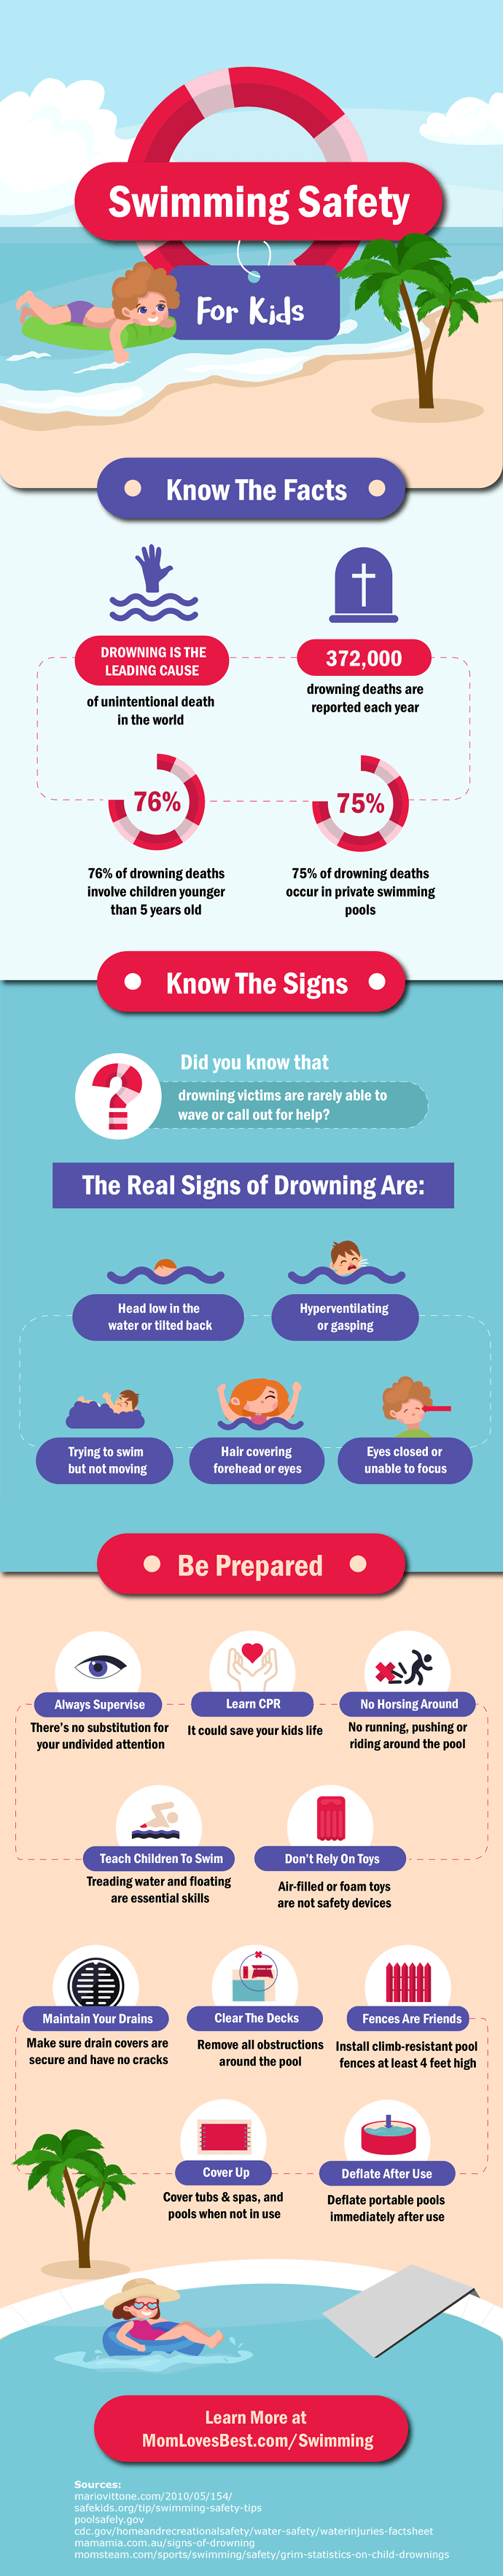 Swimming Safety For Kids